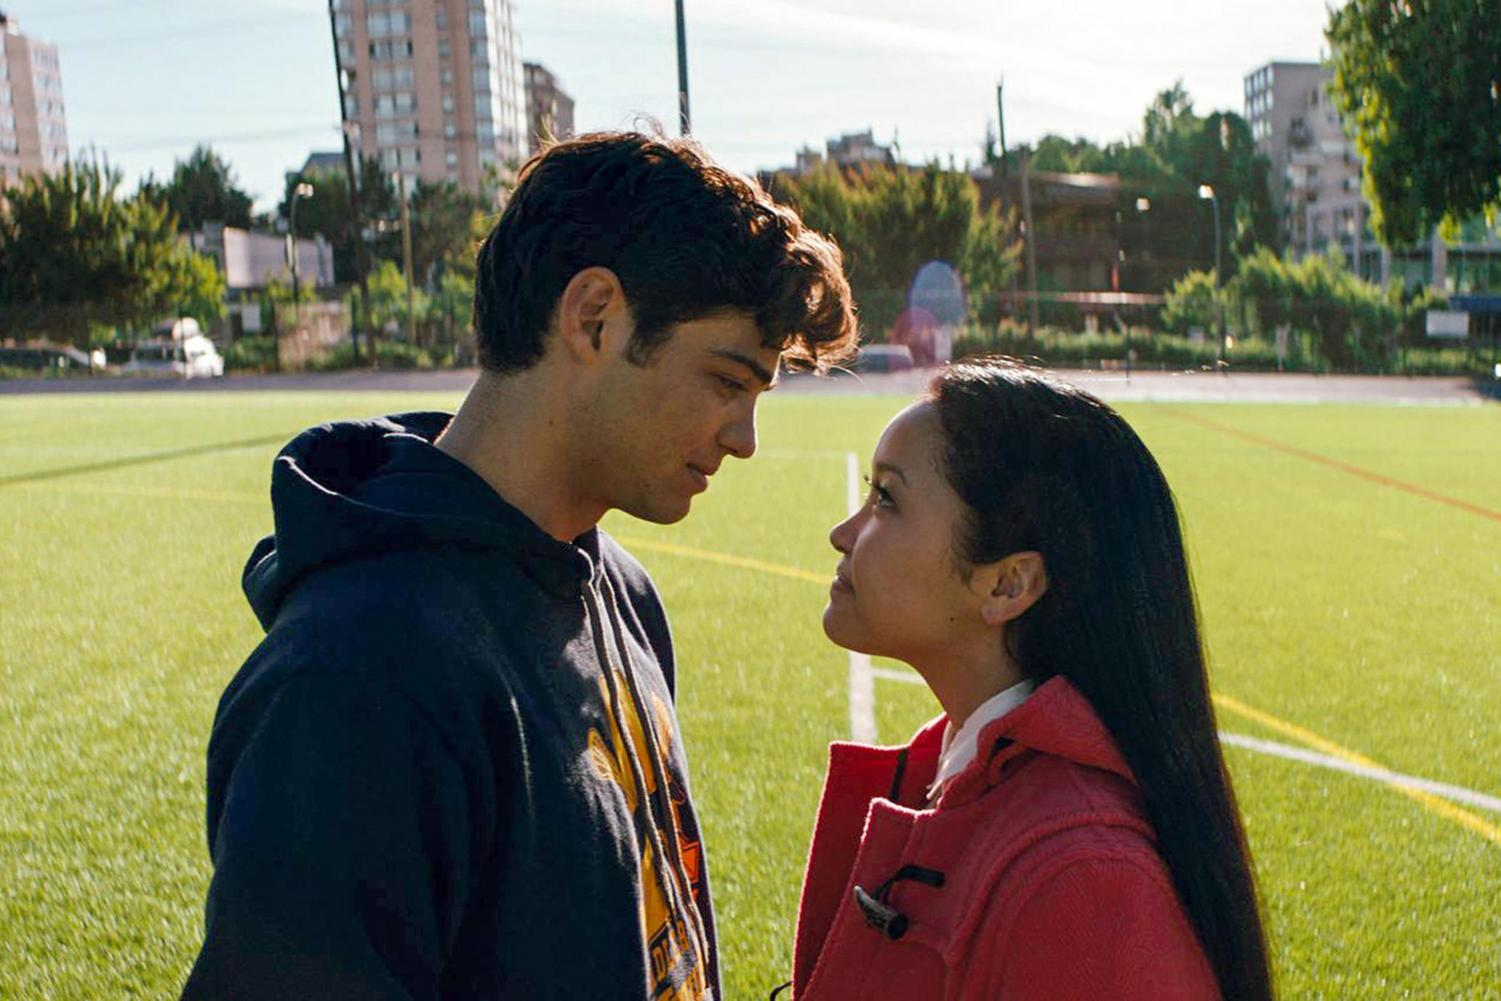 Lara Jean (Condor) and Peter Kavinsky's (Centineo) on-screen chemistry is undeniable.